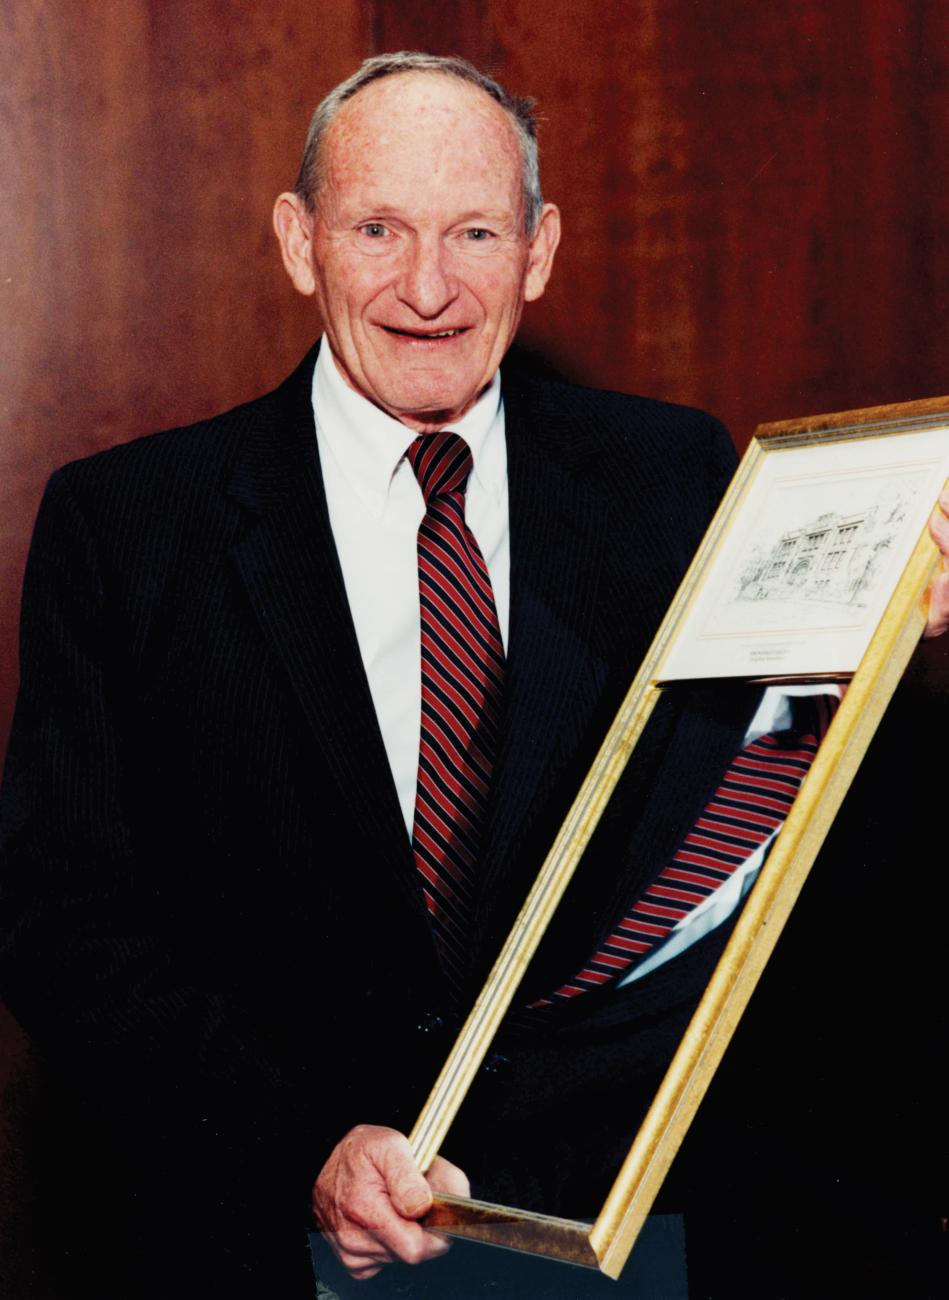 Coach David Auxter, Springfield College Distinguished Alumnus Award honoree, 1994